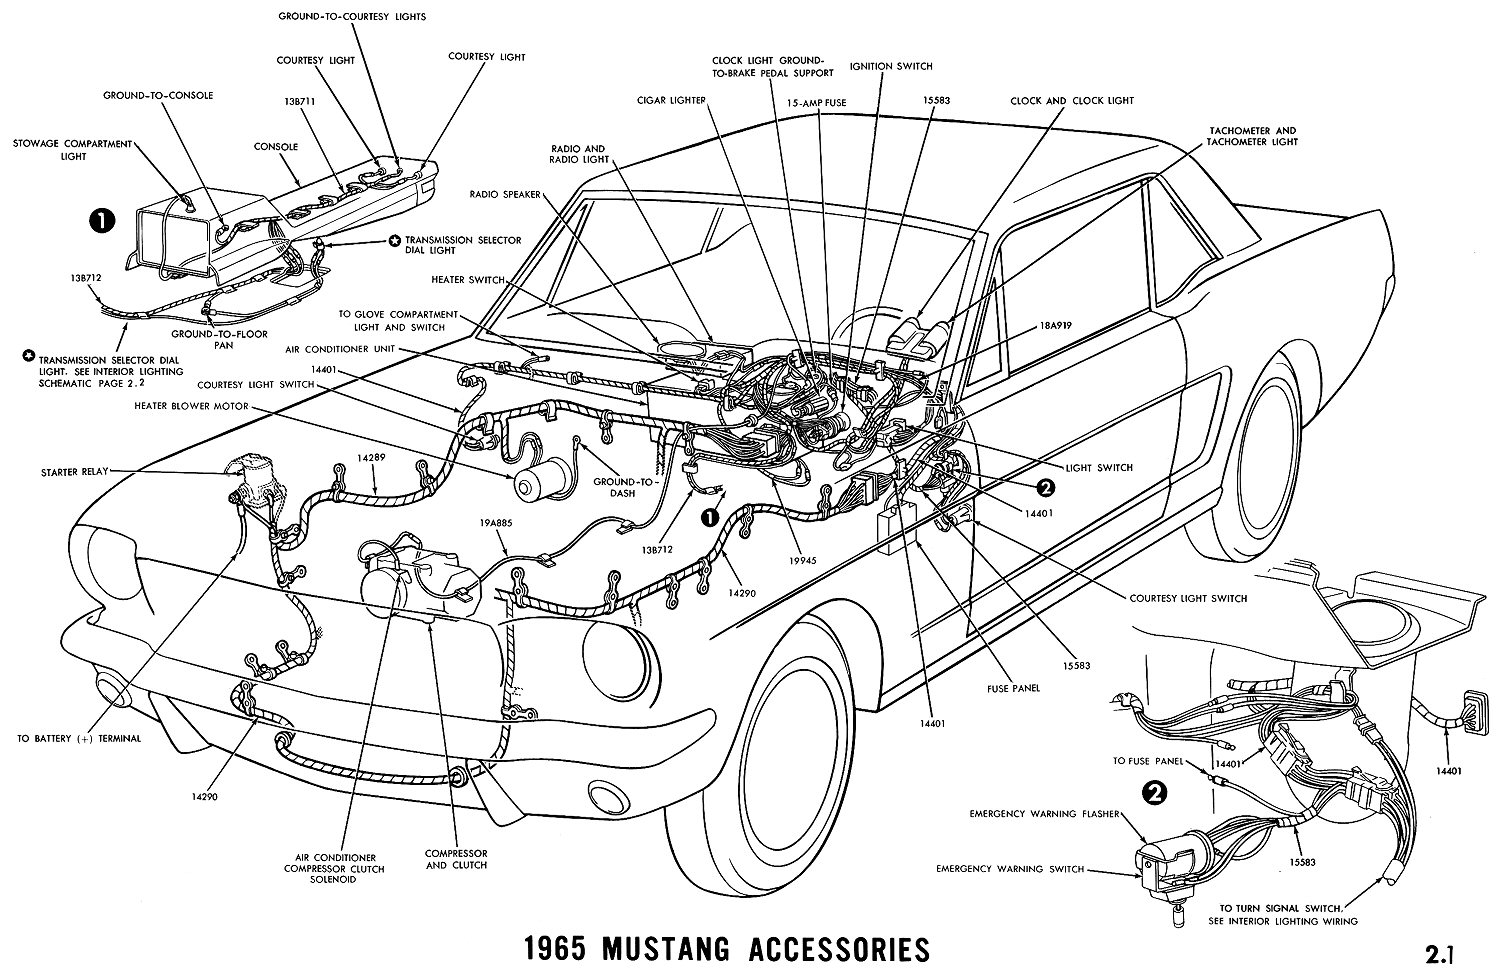 65 mustang accesories 1965 mustang accesories diagram 65 mustang engine wiring diagram at soozxer.org